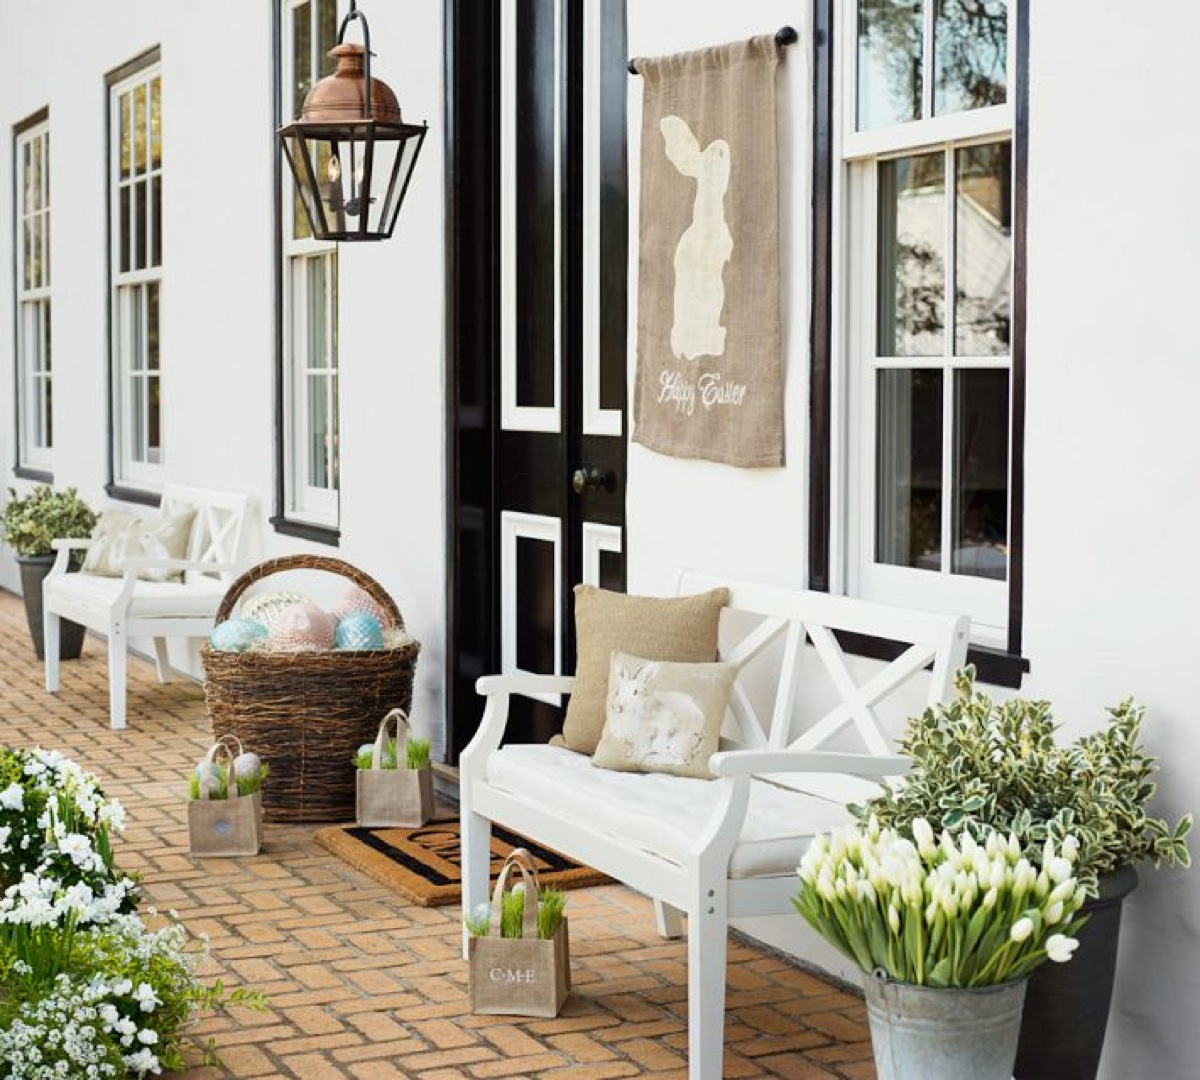 Pottery barn easter porch